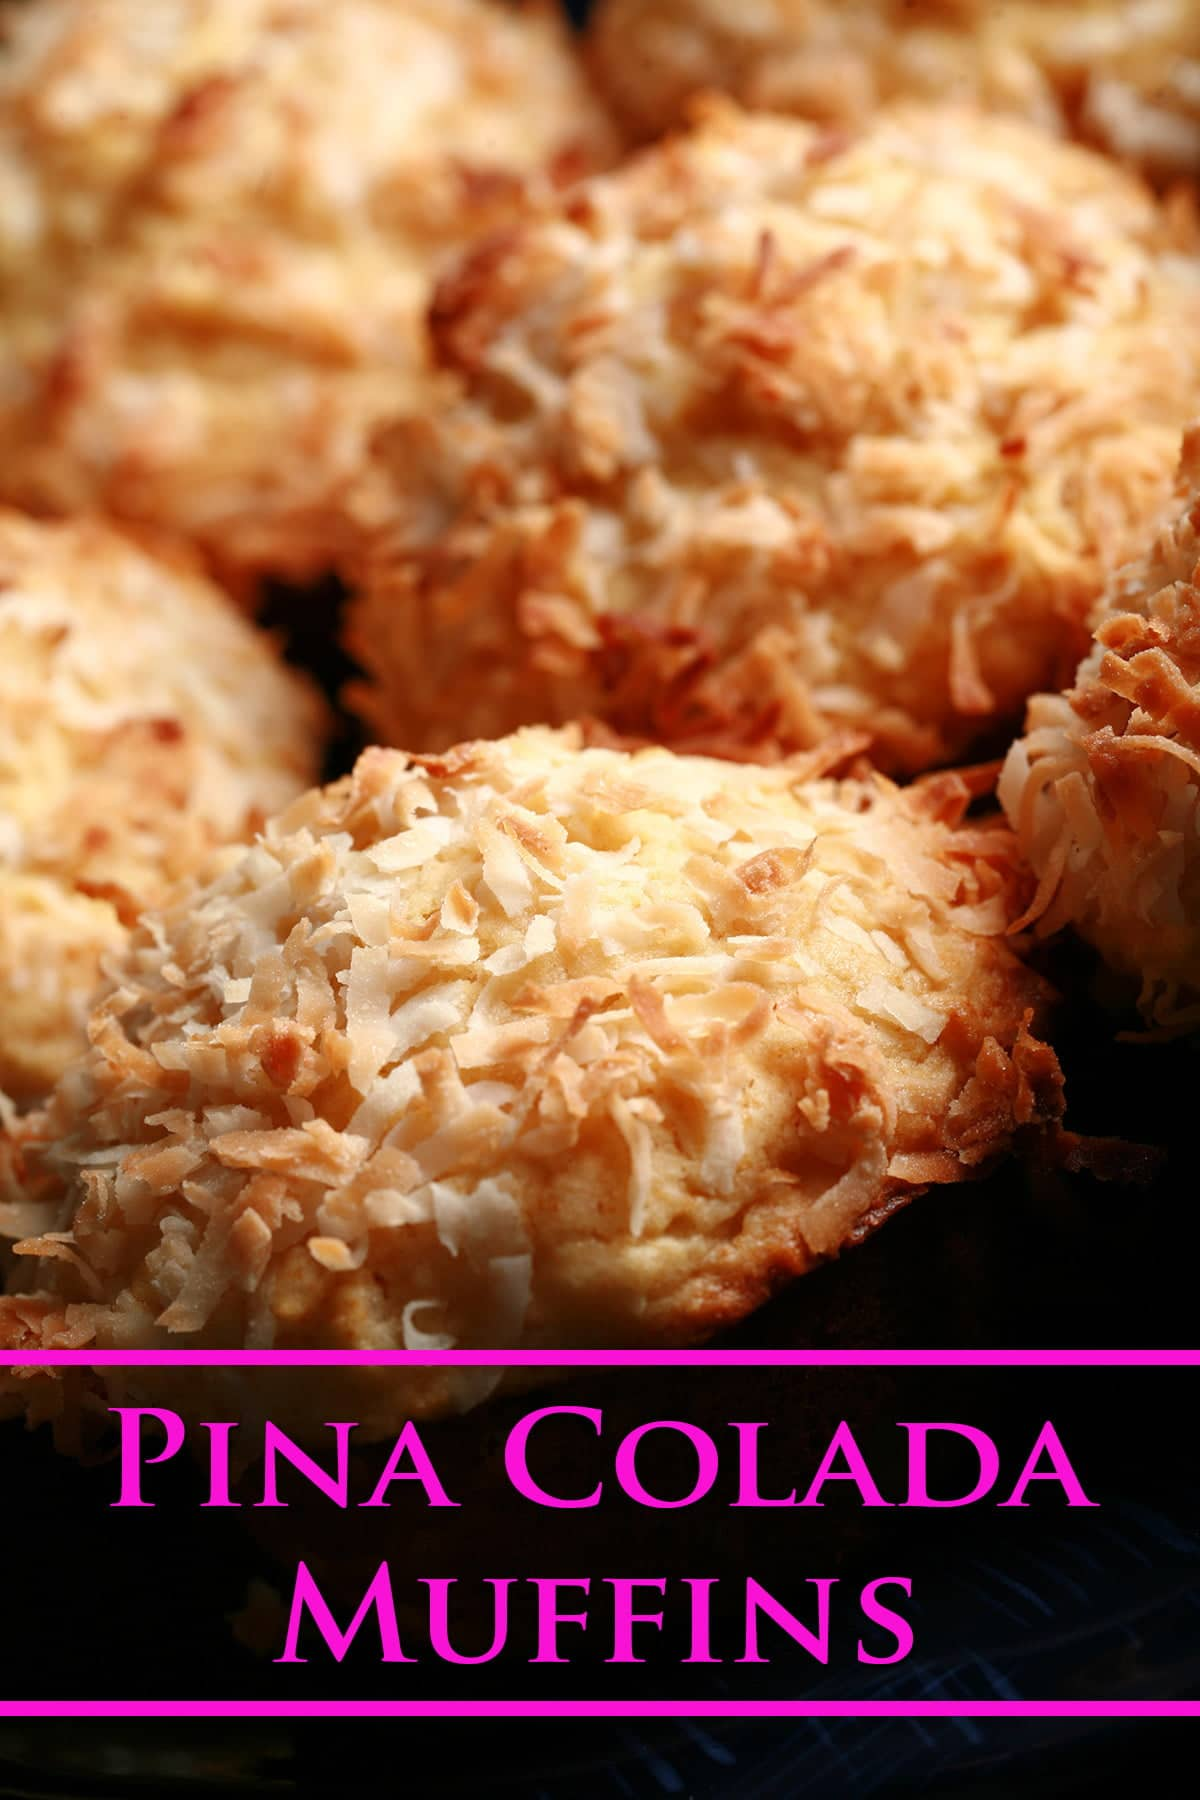 Several Pina Colada Muffins, tightly arranged. The tops of each are covered in toasted coconut.